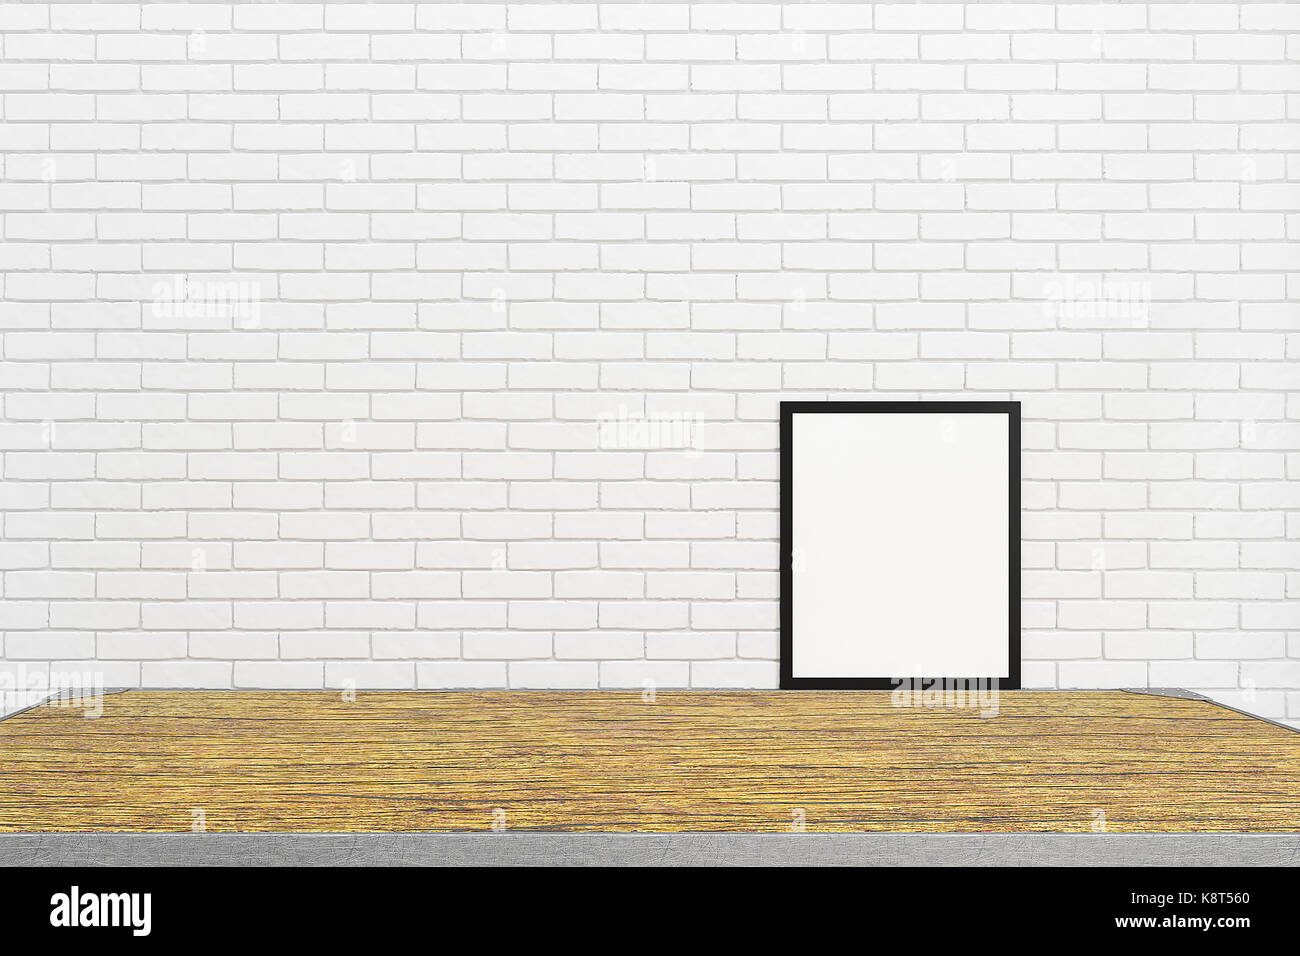 Plain wood table with hipster brick wall background stock photo - Blank White Brick Wall Interior With Blank Wood Table And Frame From For Mockup Design